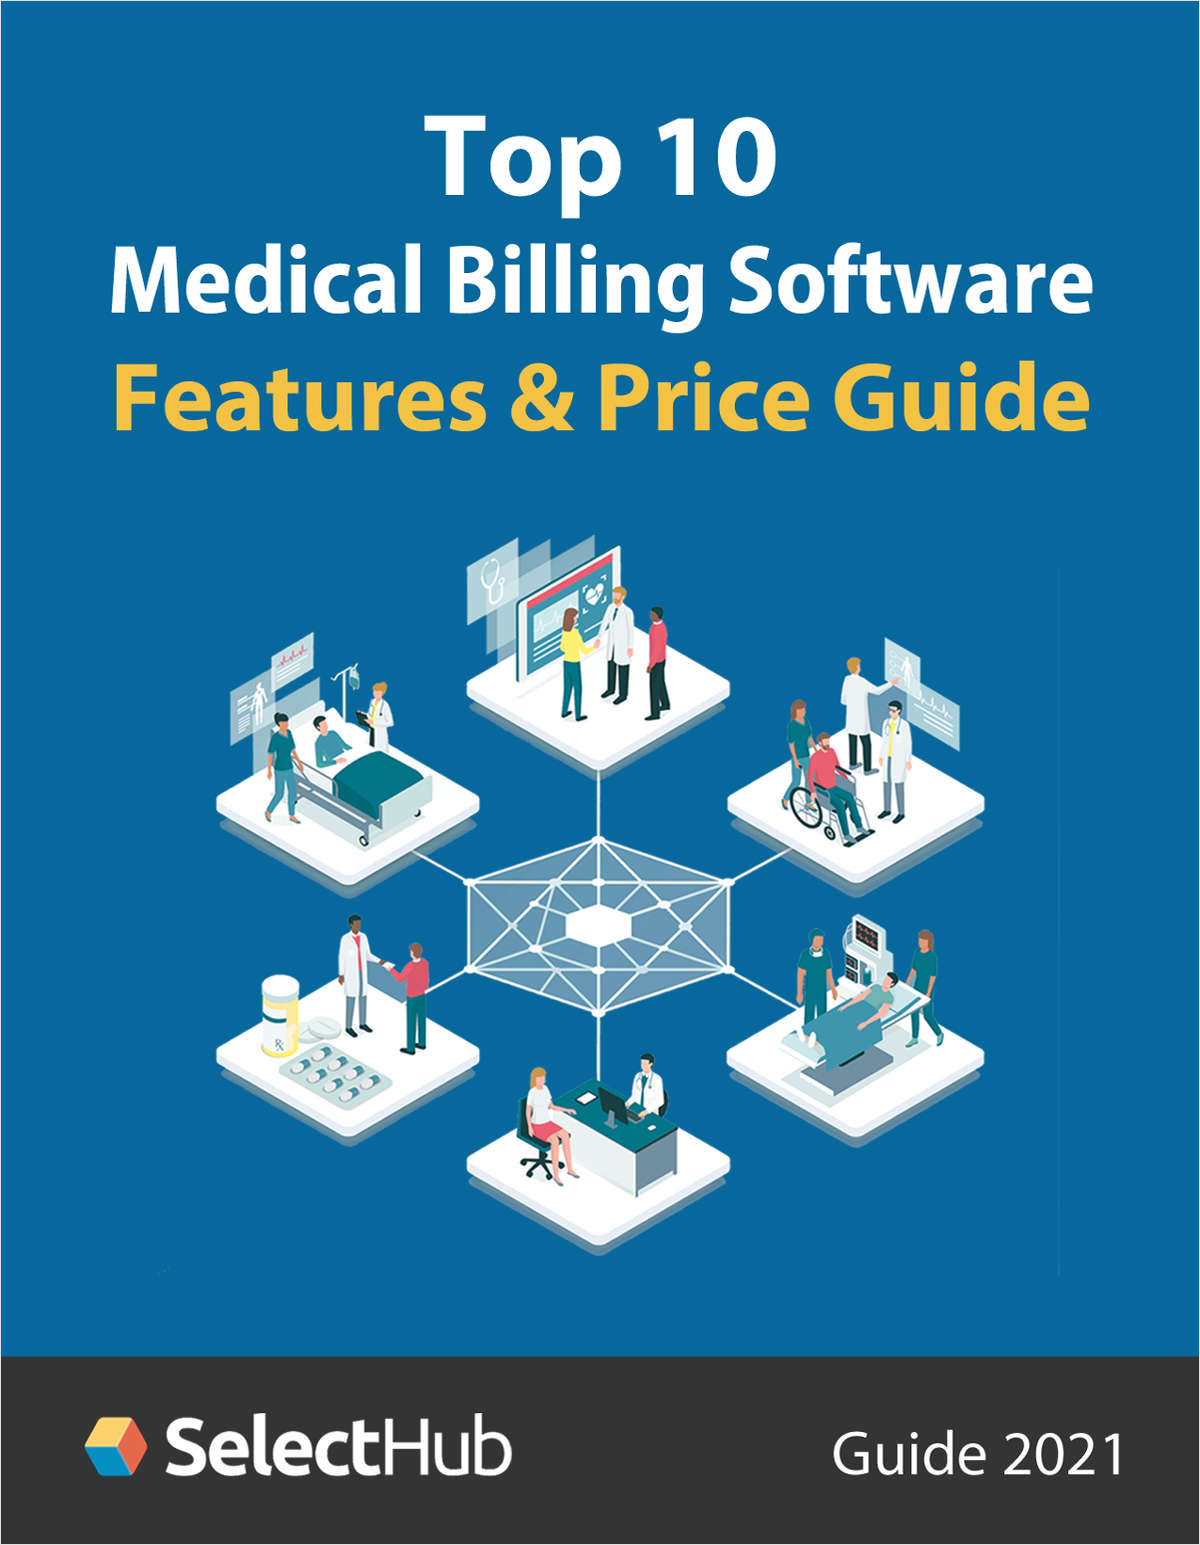 Top 10 Medical Billing Software Features & Price Guide 2021